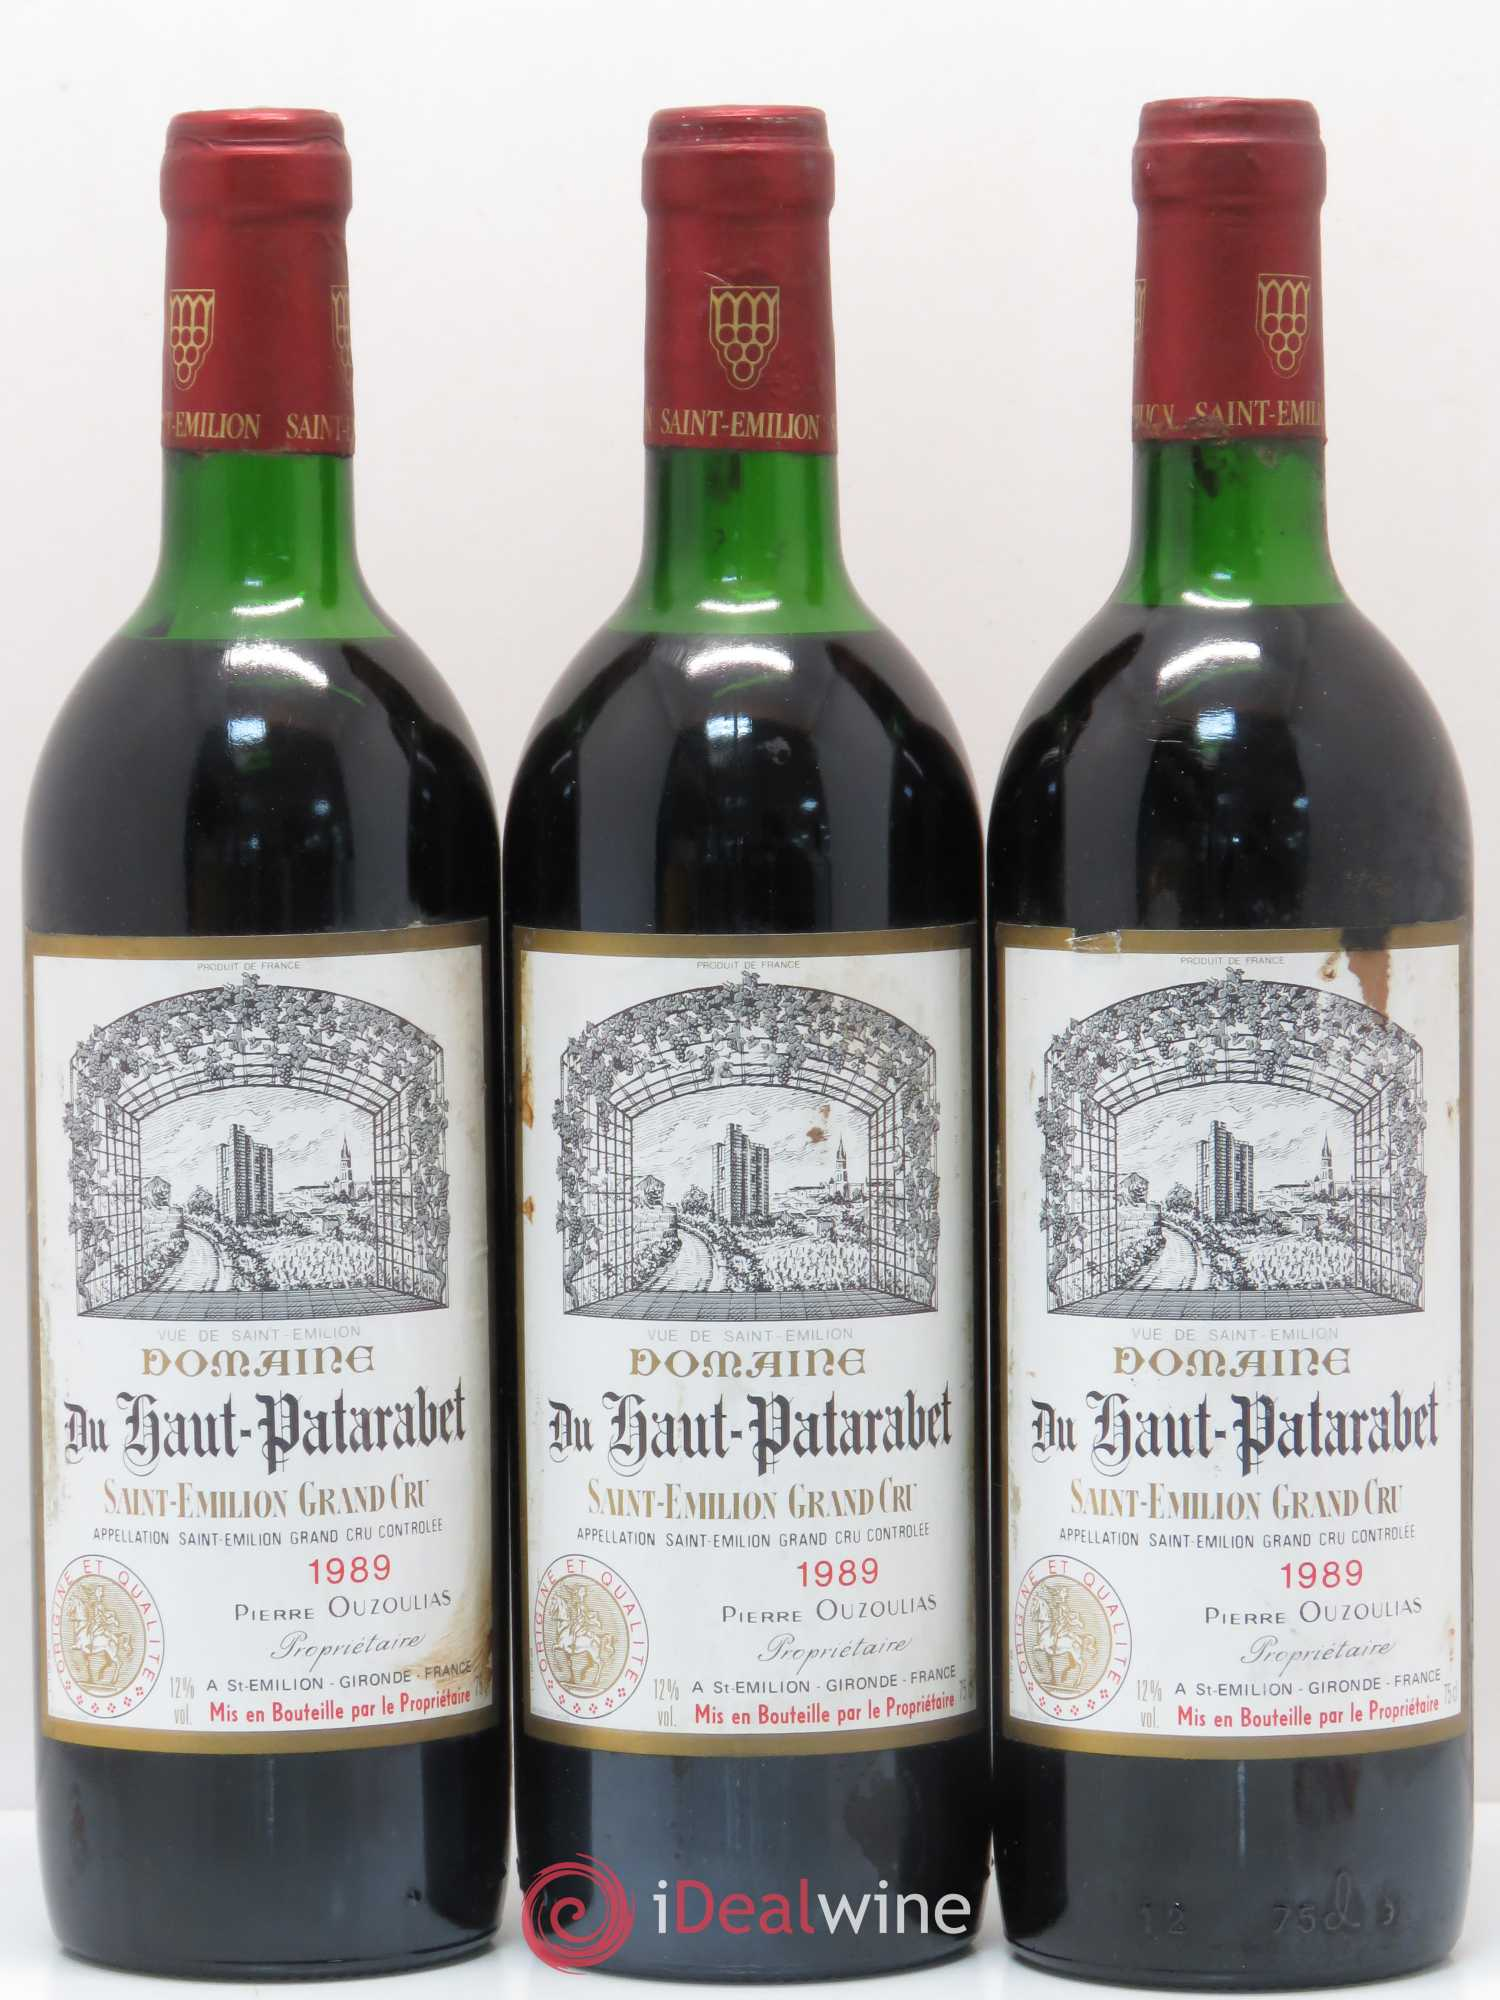 Saint-Émilion Grand Cru Domaine du Haut Patarabet (no reserve) 1989 - Lot of 3 Bottles